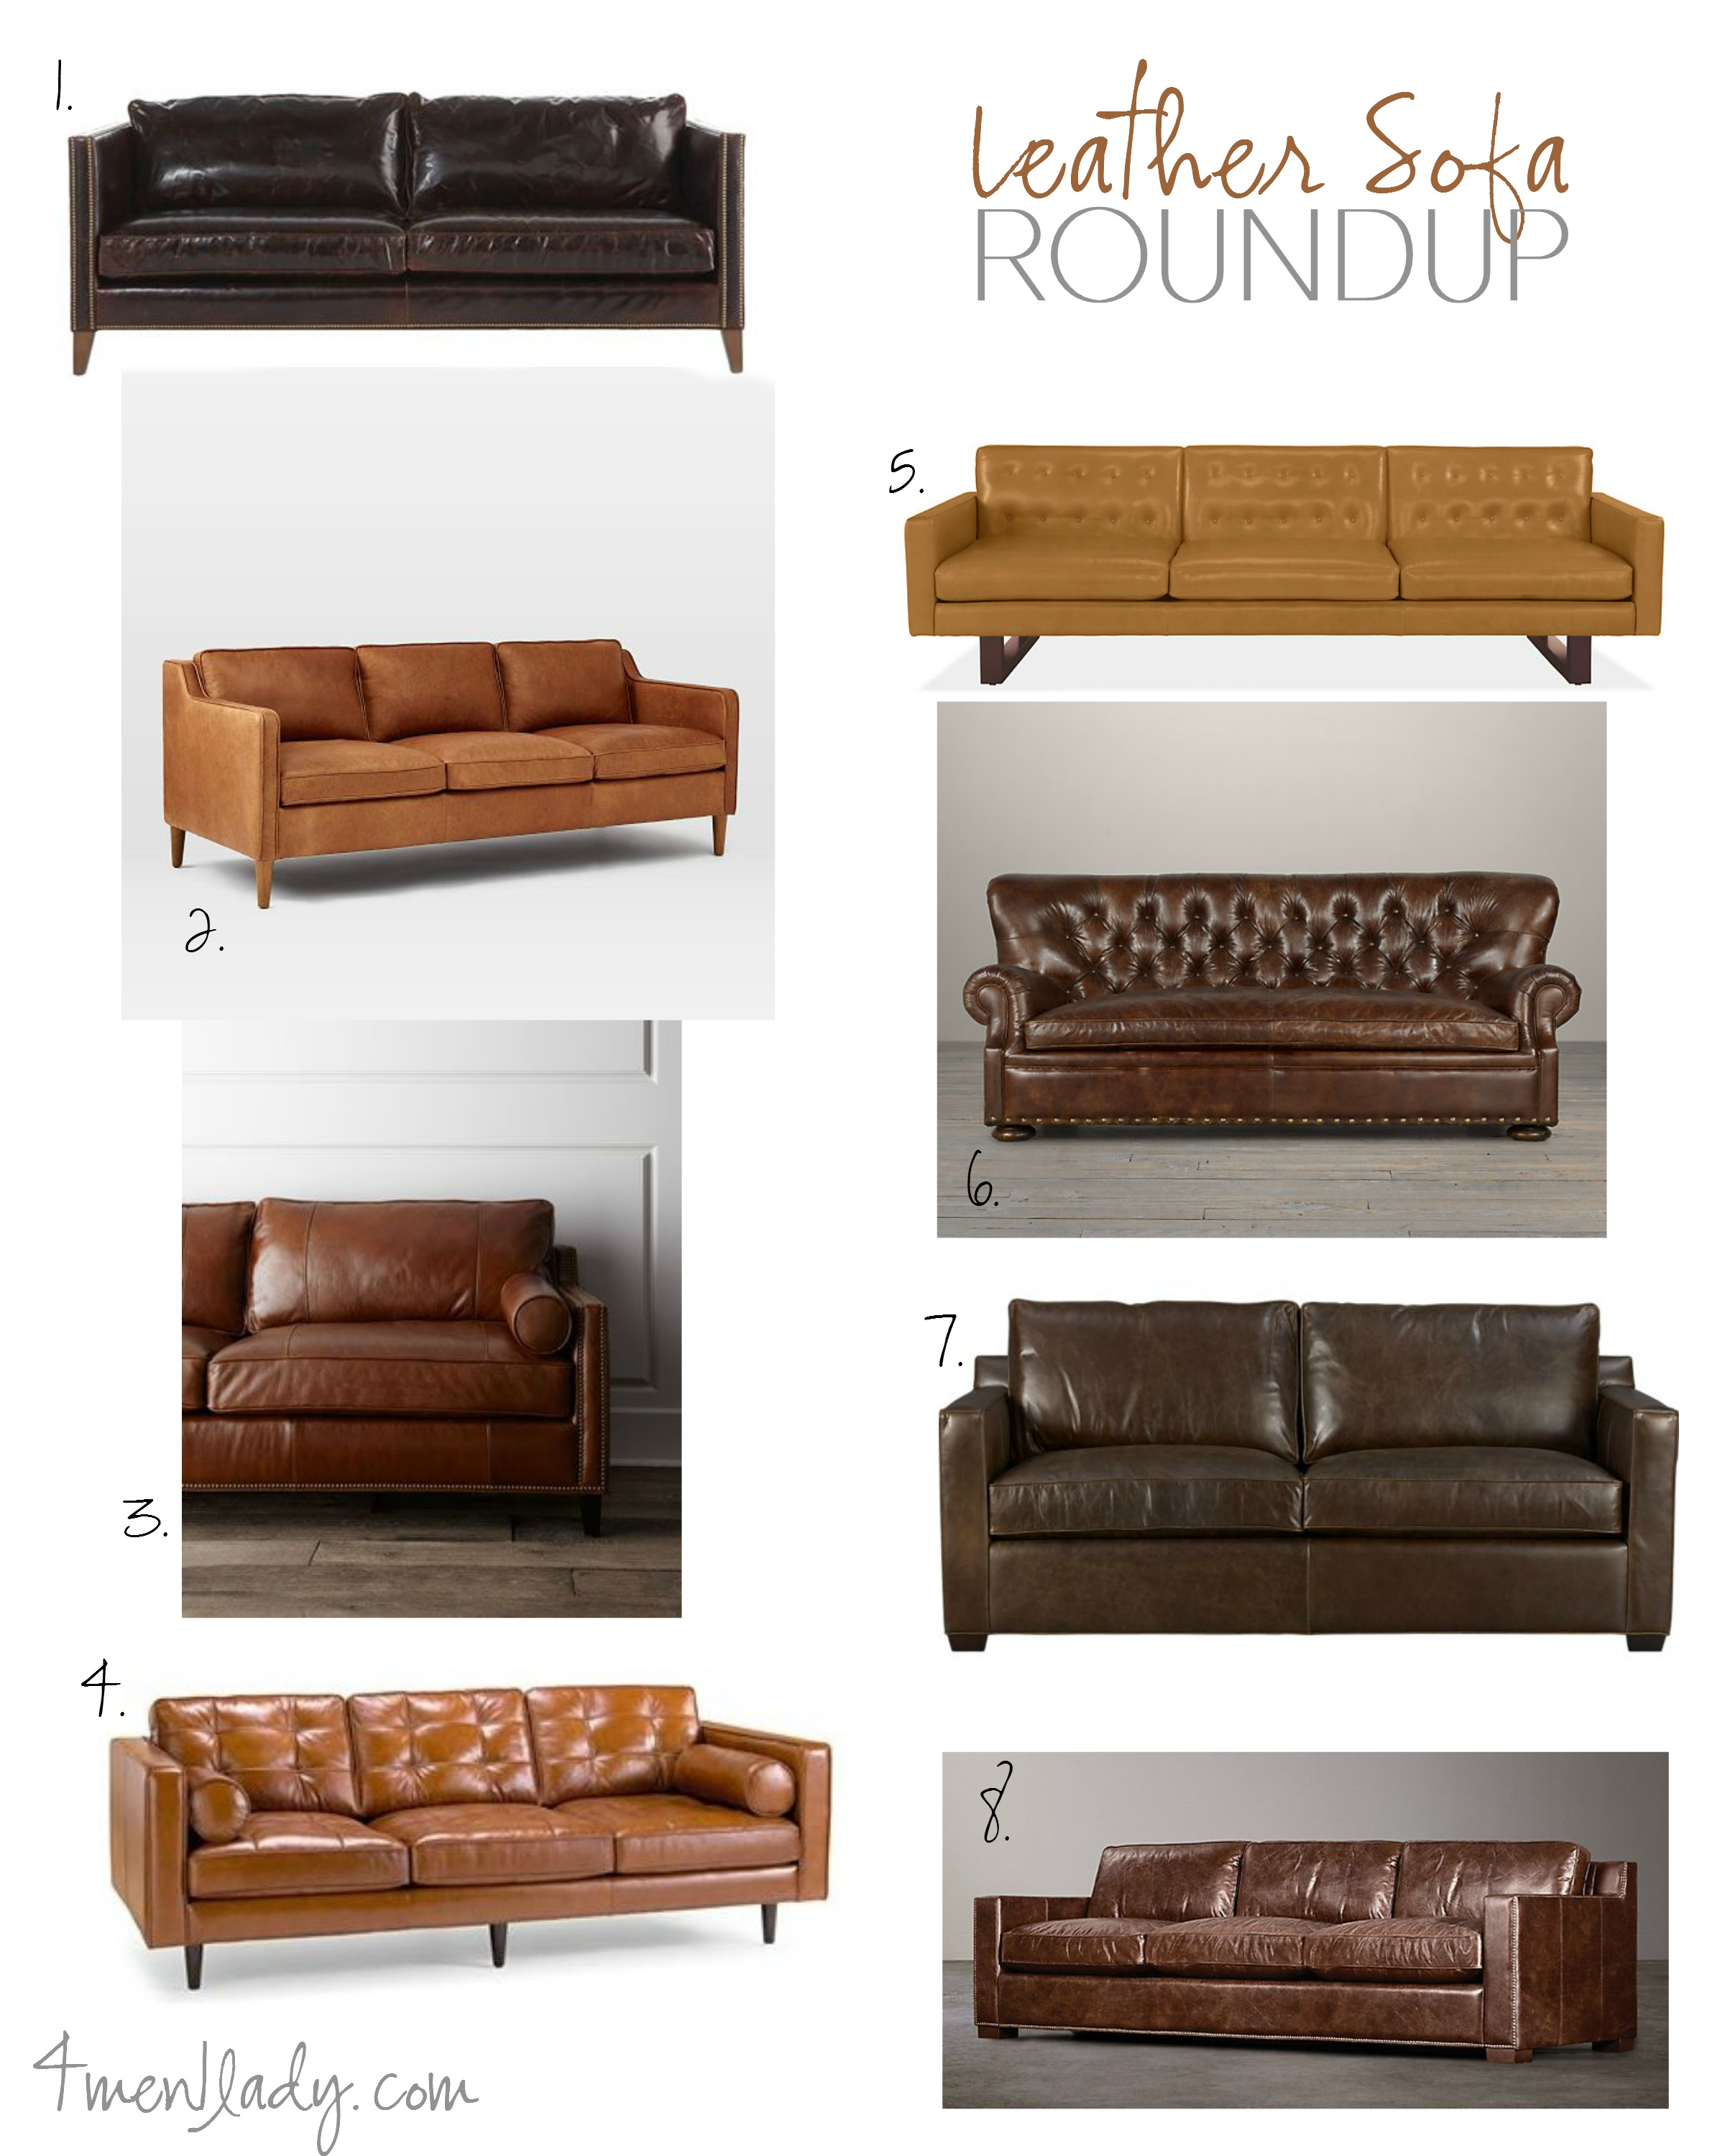 Sofa roundup 4men1lady